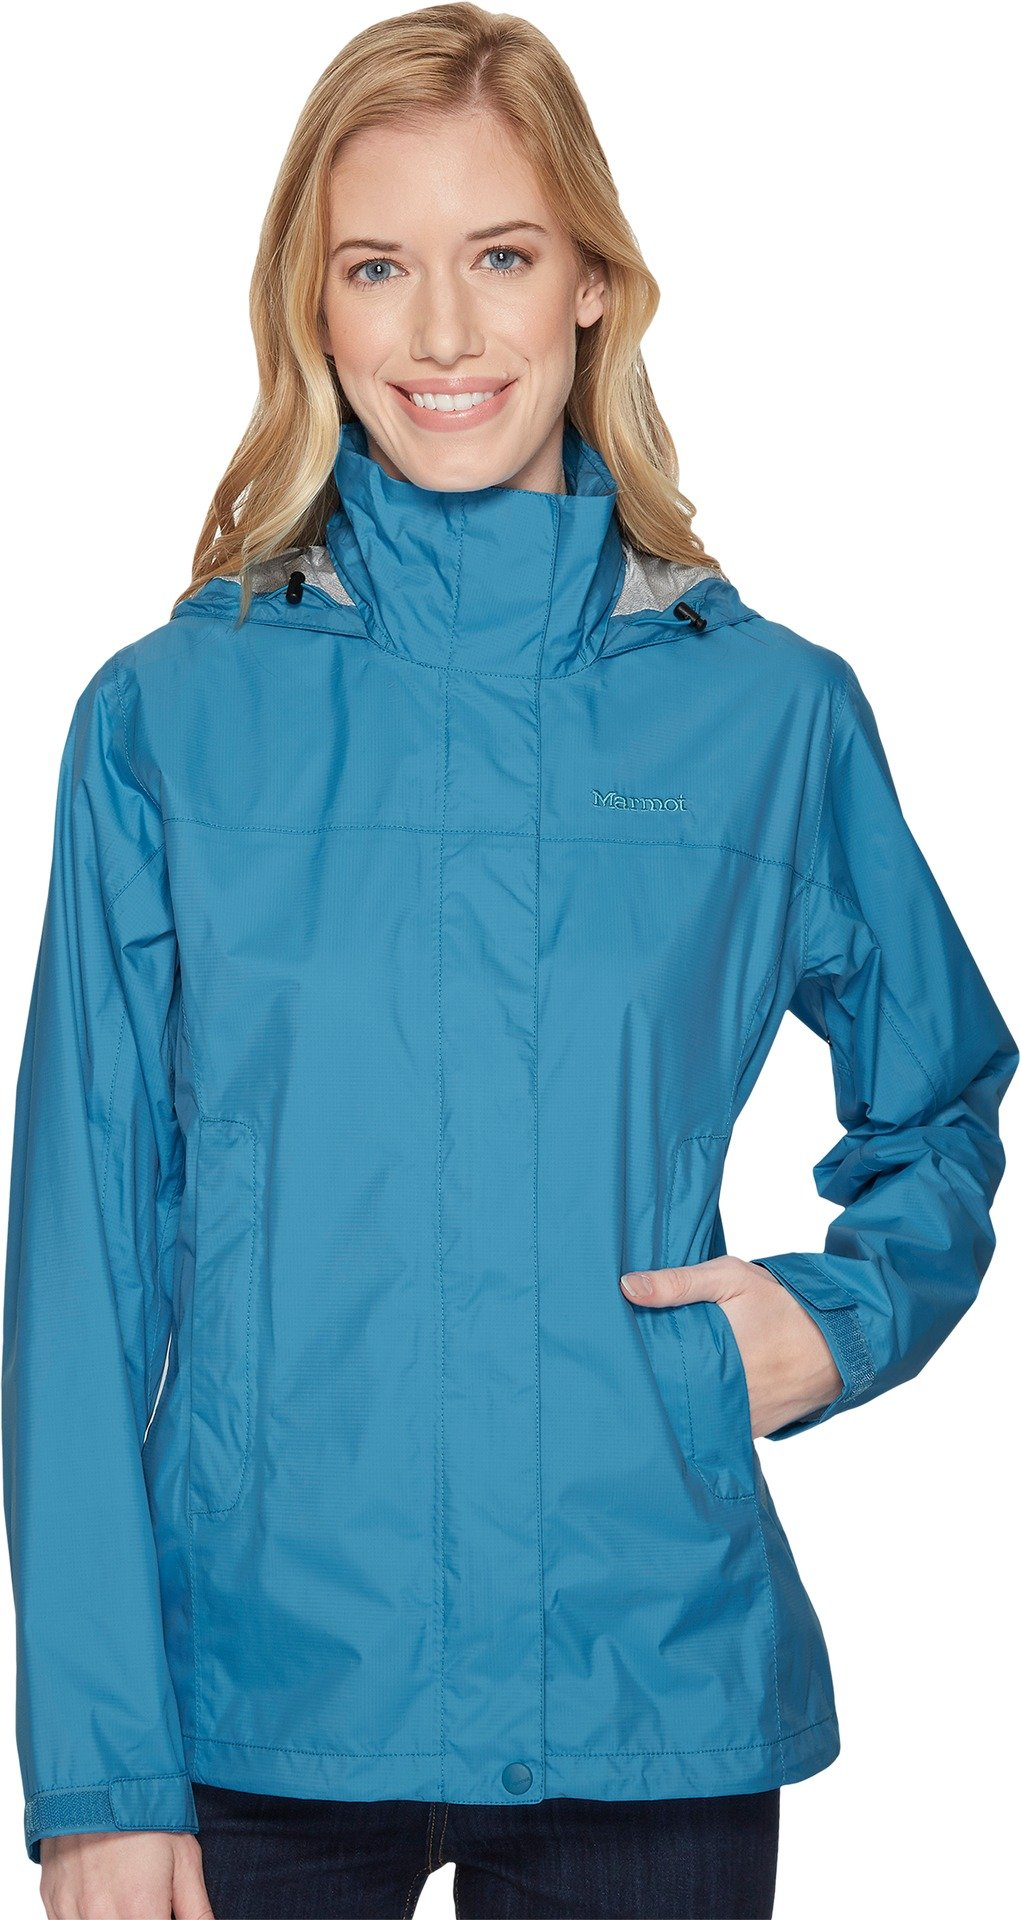 Marmot Women's PreCip Jacket Oceanic XX-Large by Marmot